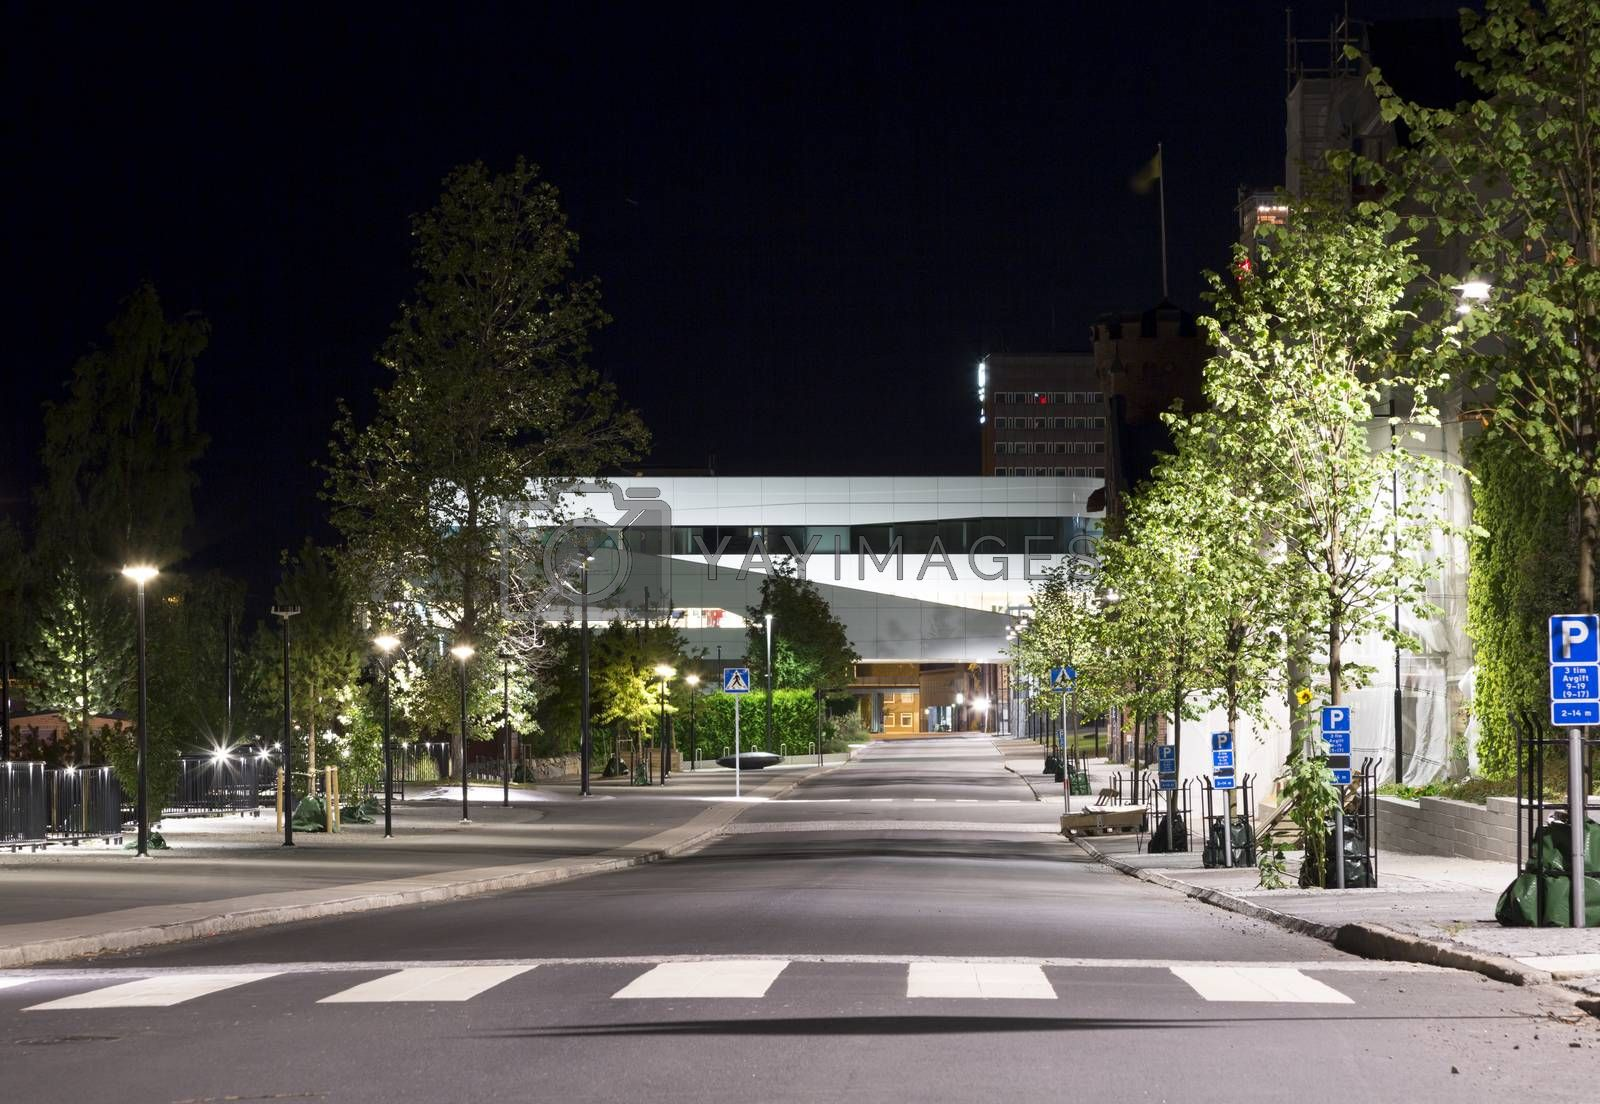 Downtown Umeå, Sweden at Night with the modern Väven building in the back.